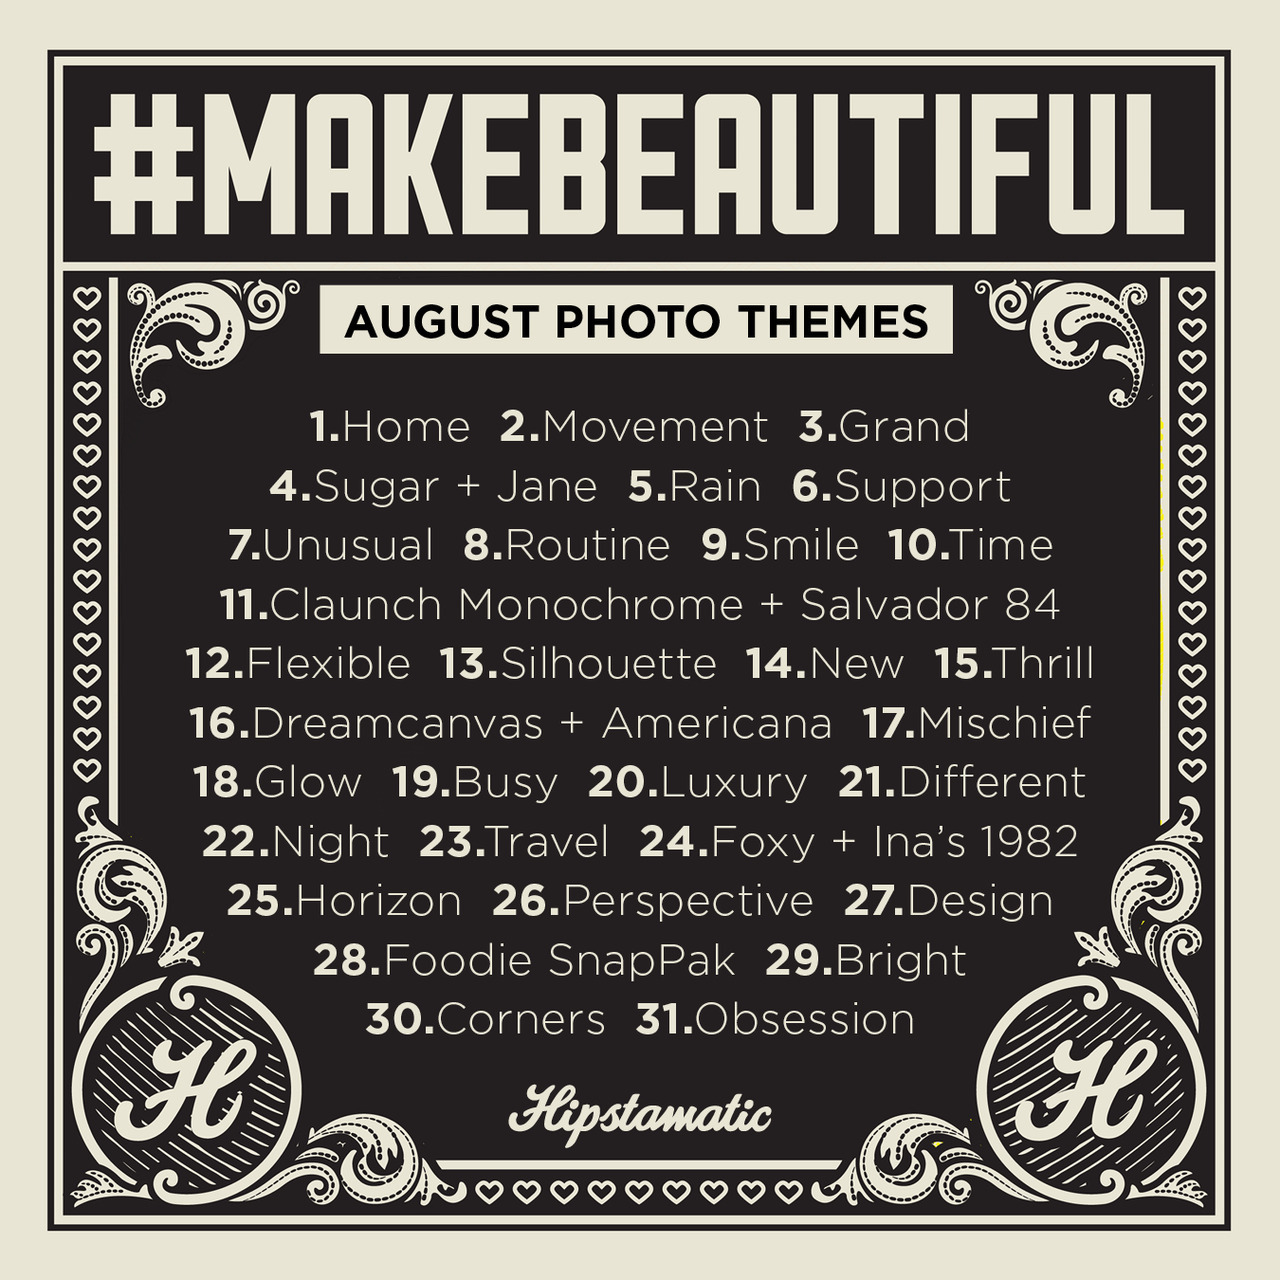 August #MakeBeautiful themes are now up! See your photos over at makebeautiful.hipstamatic.com and keep sharing! Massive props to Samuel Gasc over at HipstaChallenge for giving us a hand with August's themes. Follow the group on Twitter for some fab photo discussions!